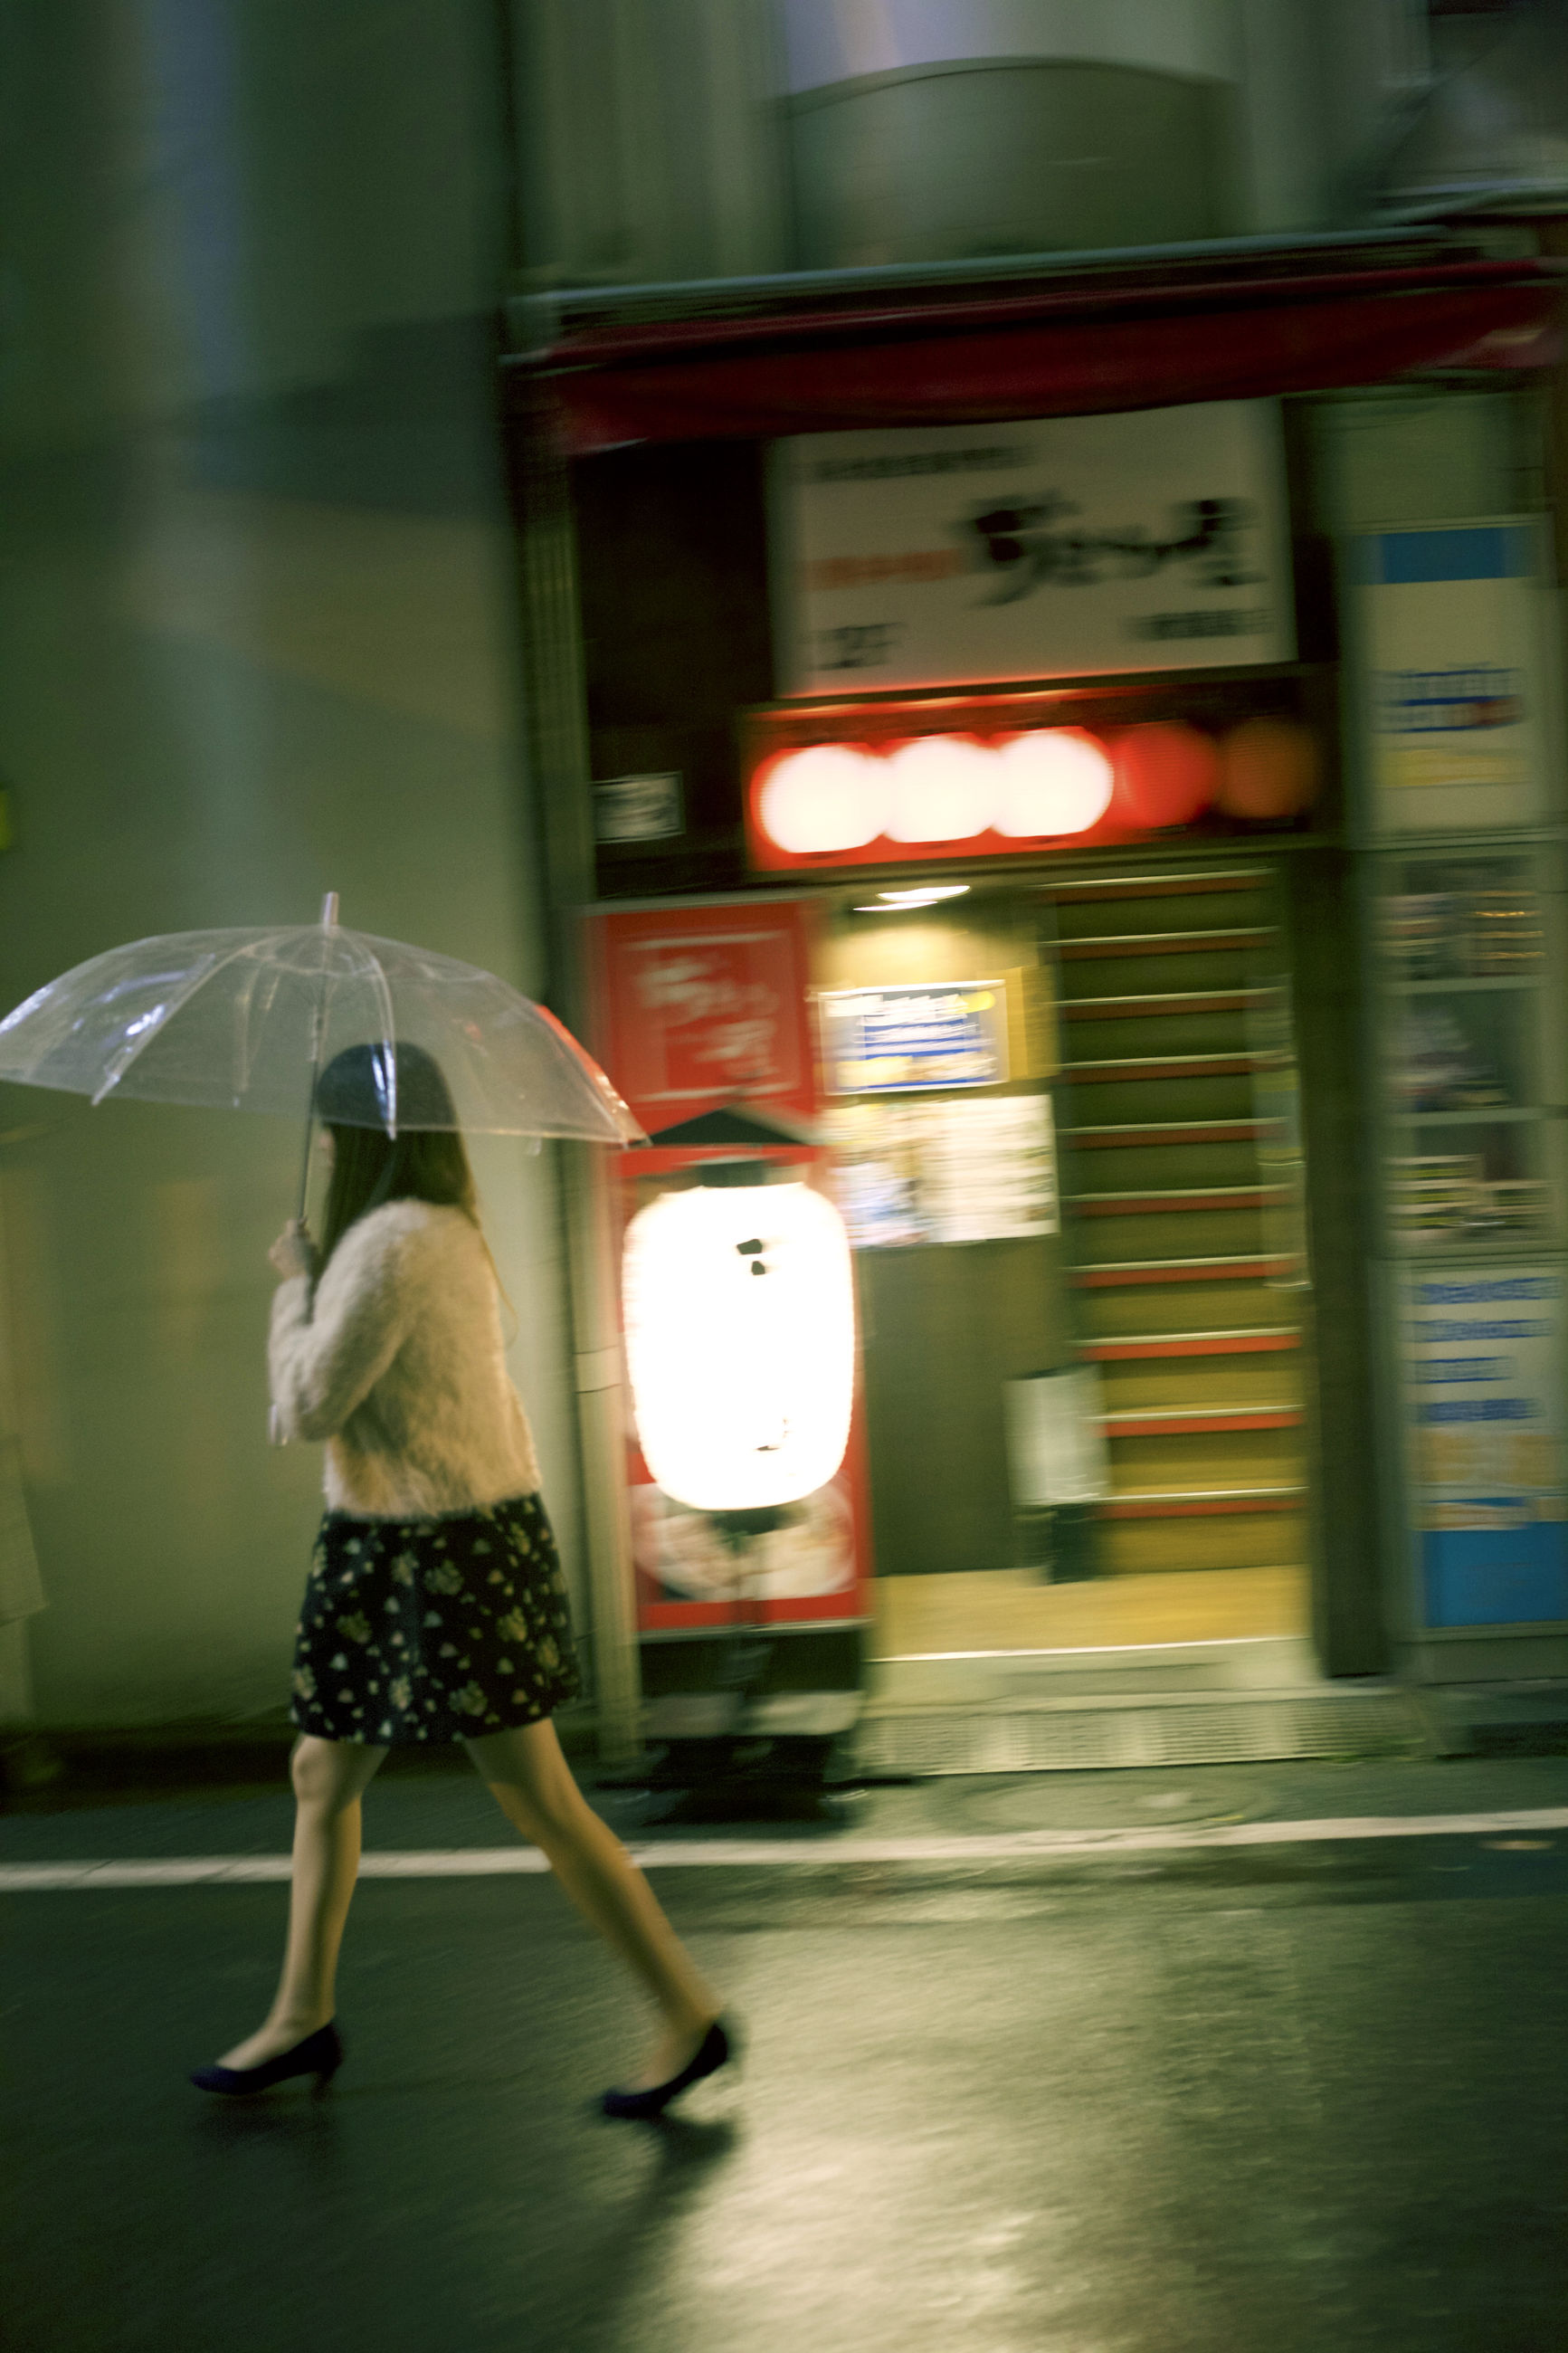 blurred motion, motion, real people, one person, full length, umbrella, women, illuminated, transportation, protection, adult, city, lifestyles, architecture, mode of transportation, speed, casual clothing, public transportation, rain, outdoors, rainy season